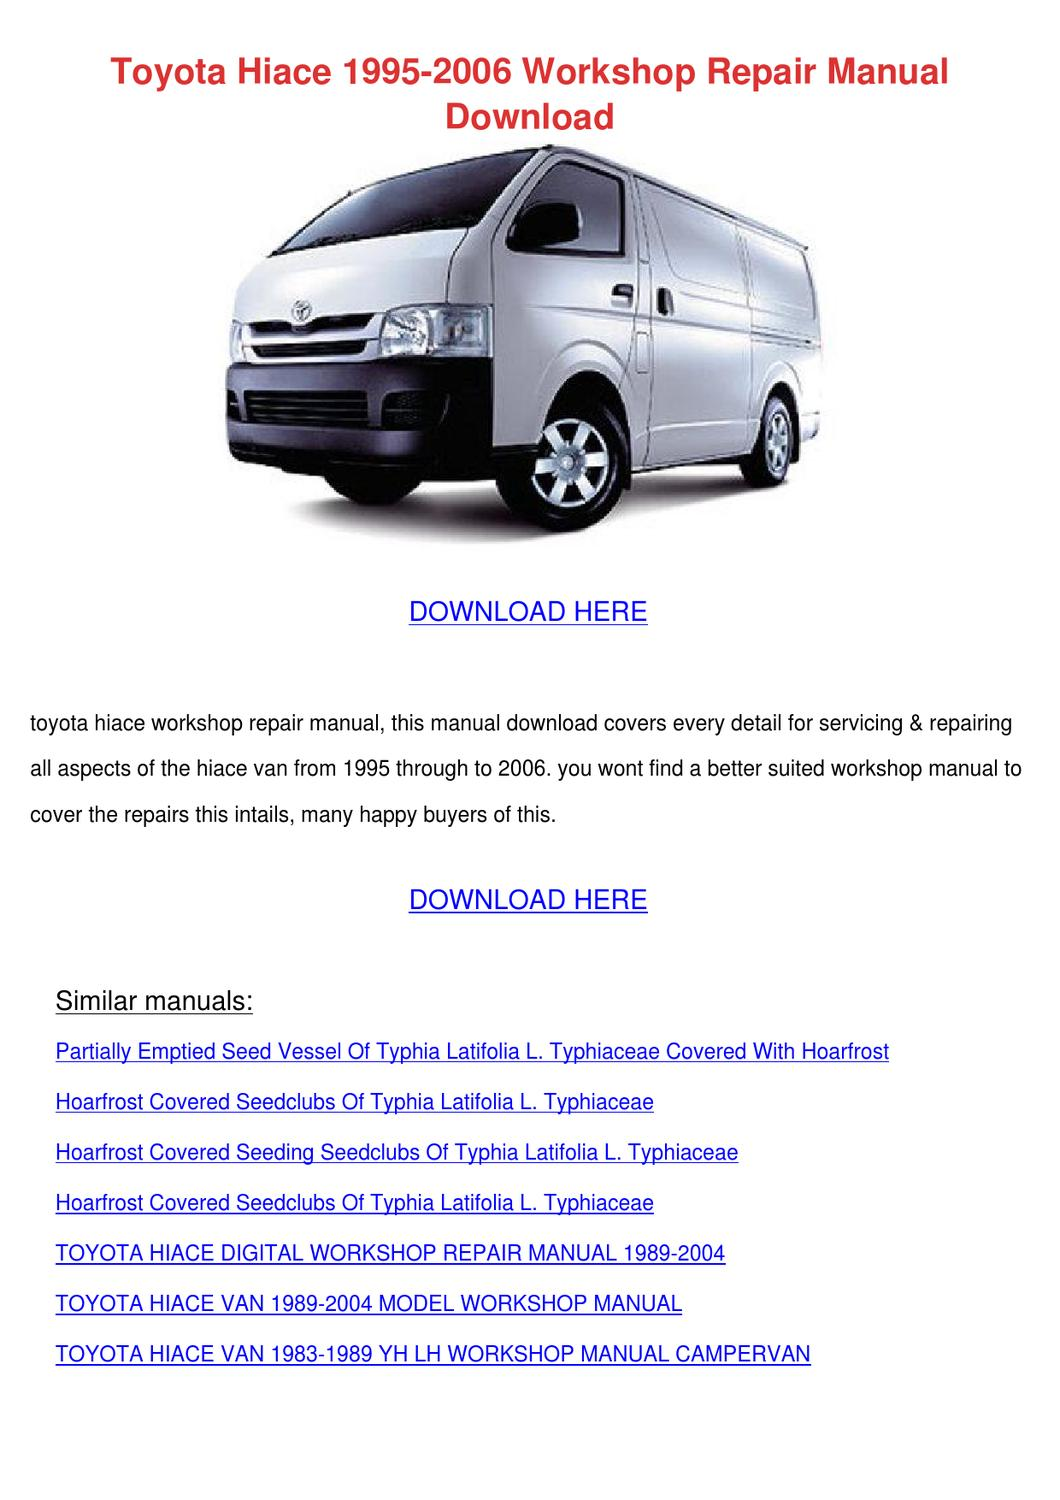 Toyota Hiace 1995 2006 Workshop Repair Manual by SalvatoreReynolds - issuu